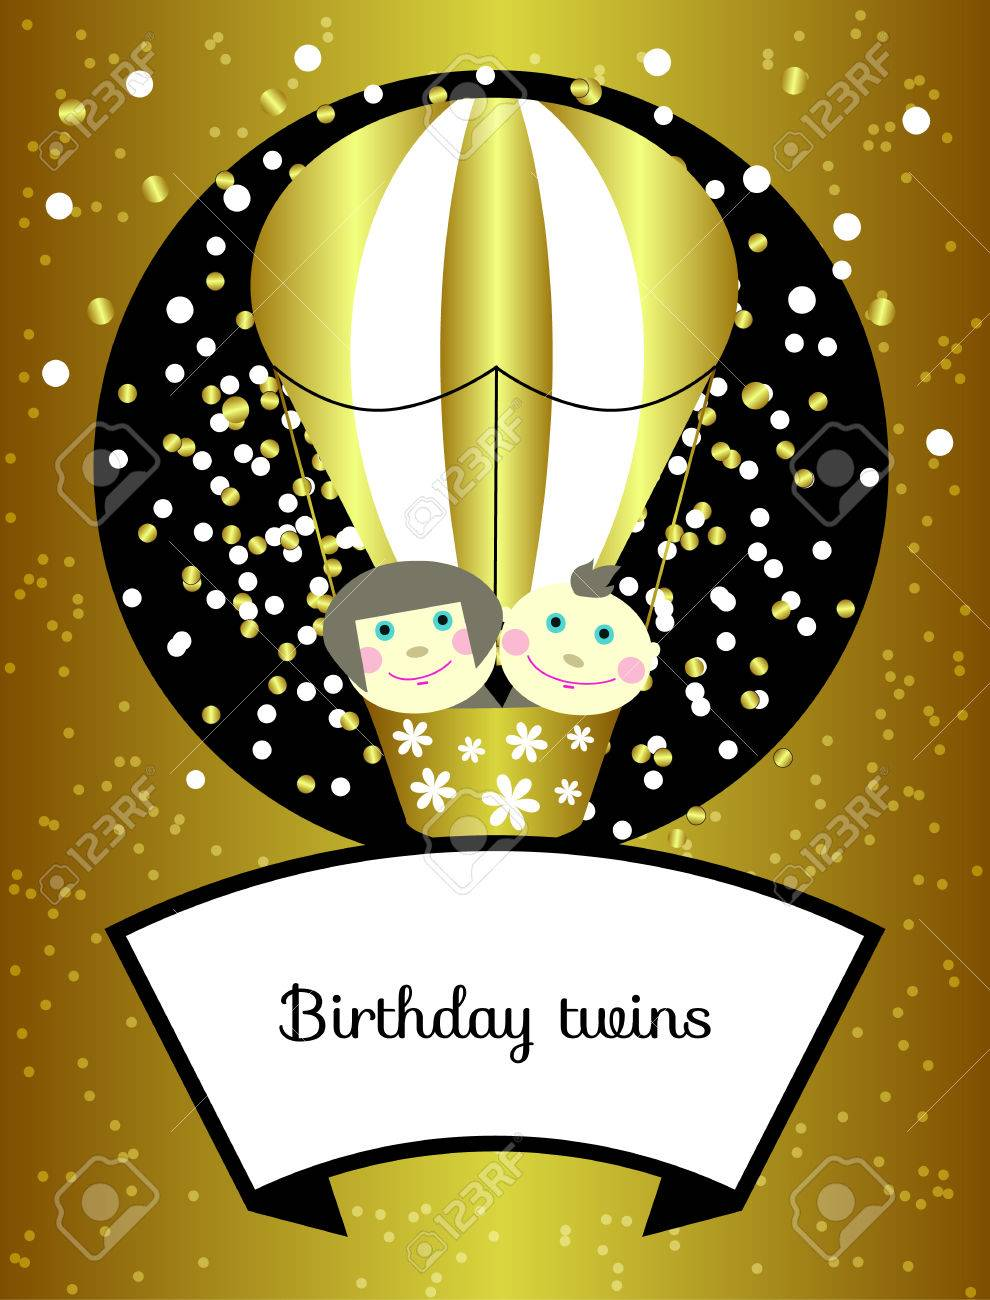 Twins Birthday Vector Shining Gold Greeting Card Invitation Little Smiling Girl And Boy